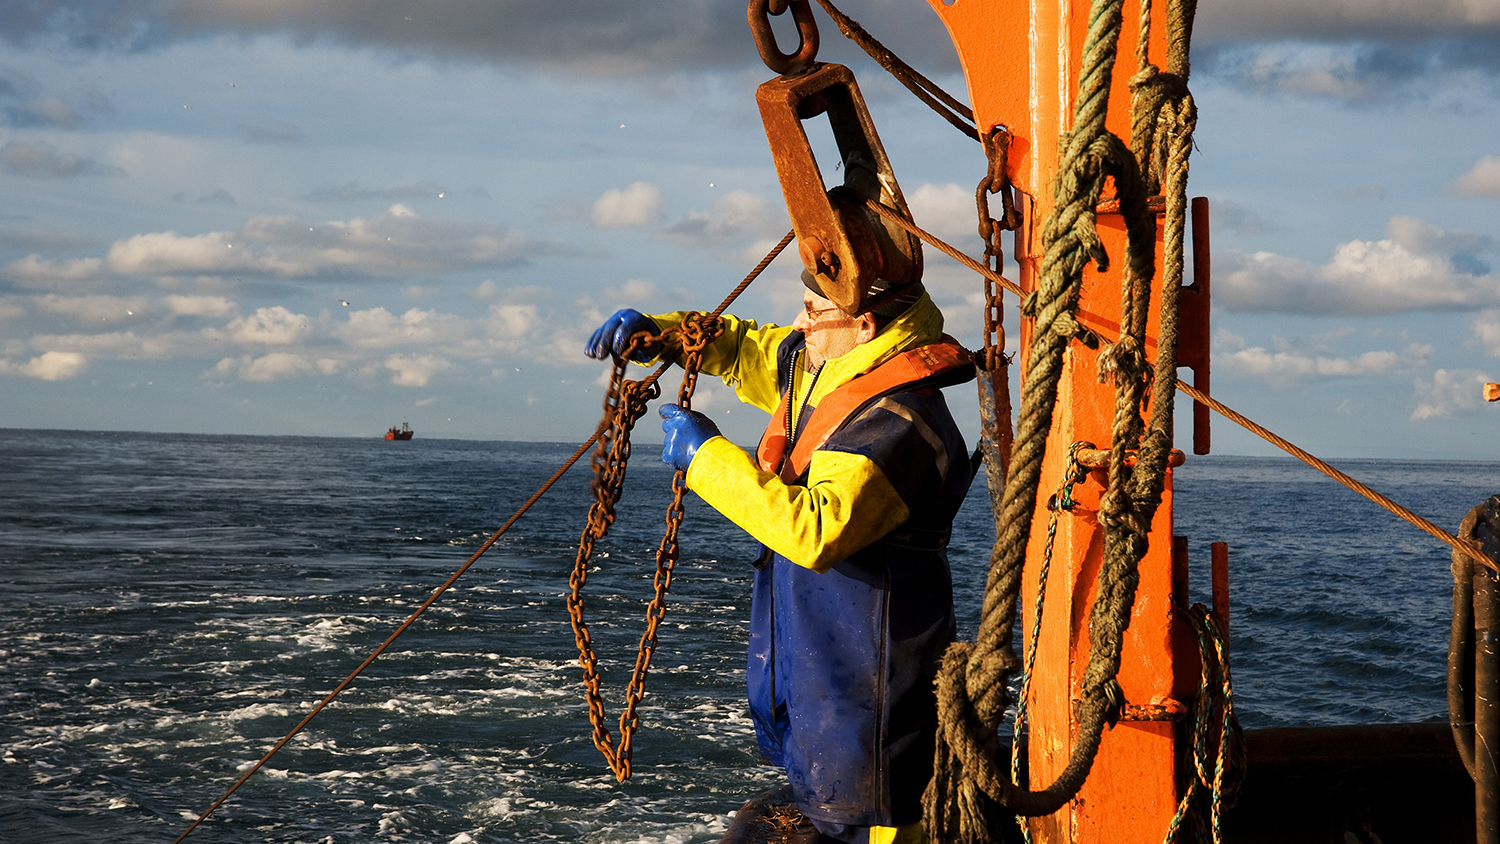 Fisherman wearing a Personal Flotation Device (PFD) while operating deck machinery